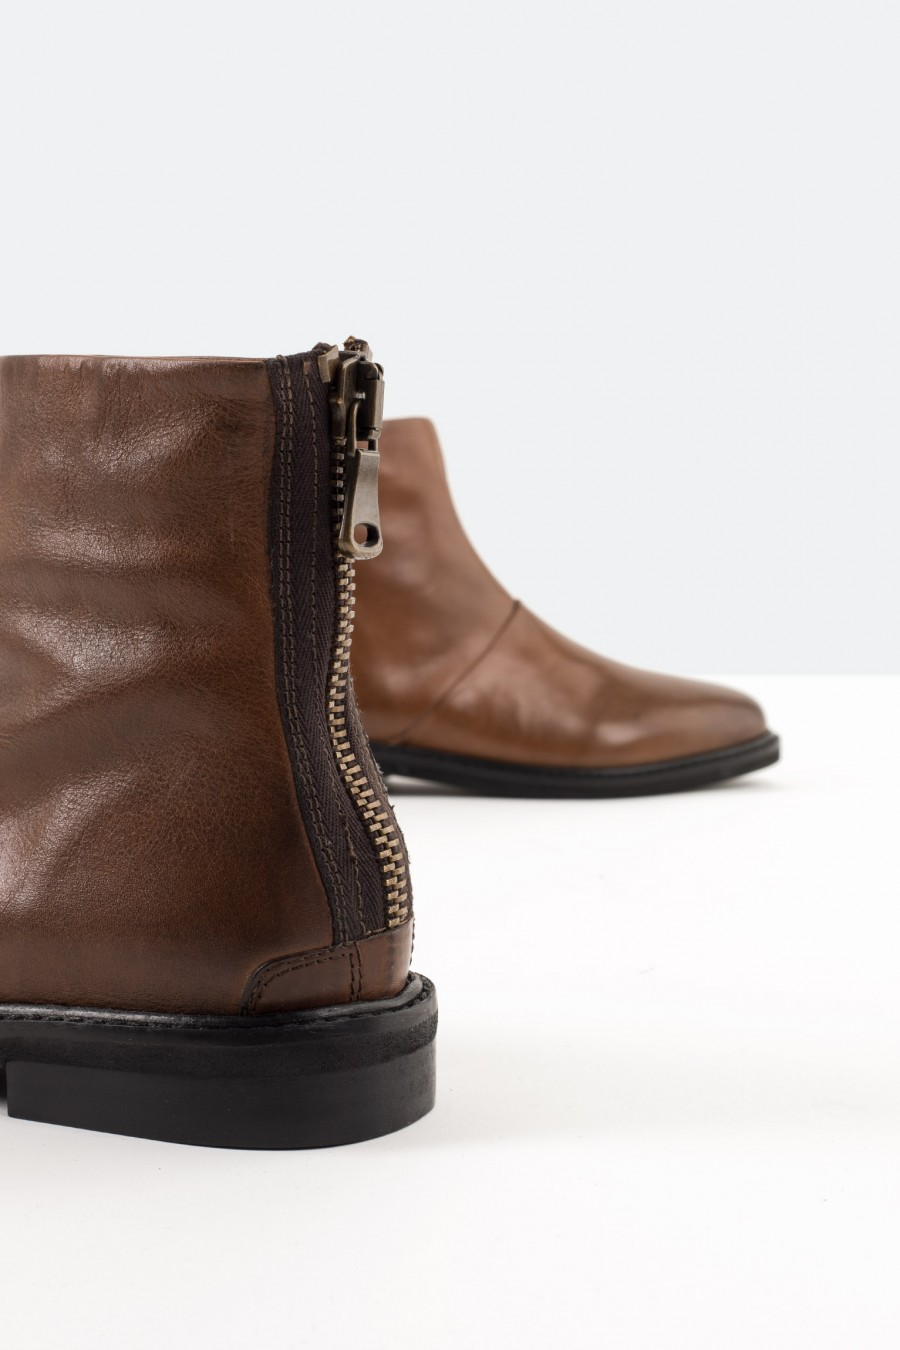 Tobacco brown leather boots with back zip